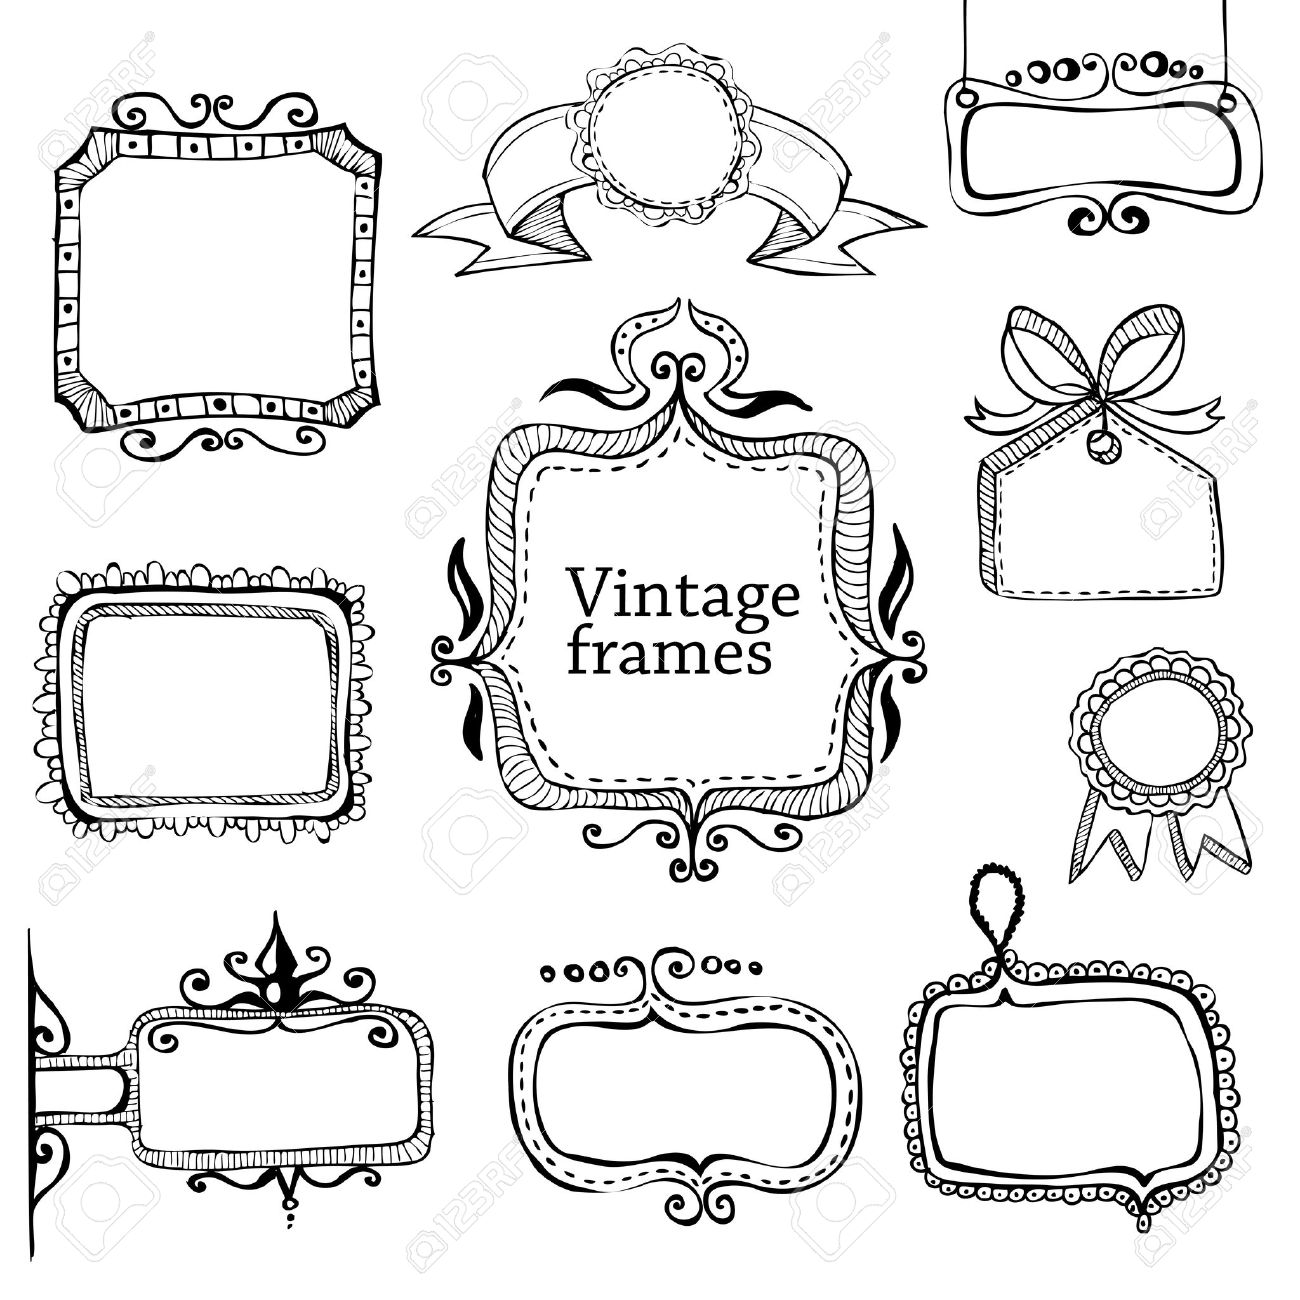 vintage hand drawn frames collection stock vector 19744277 - Drawing Frame